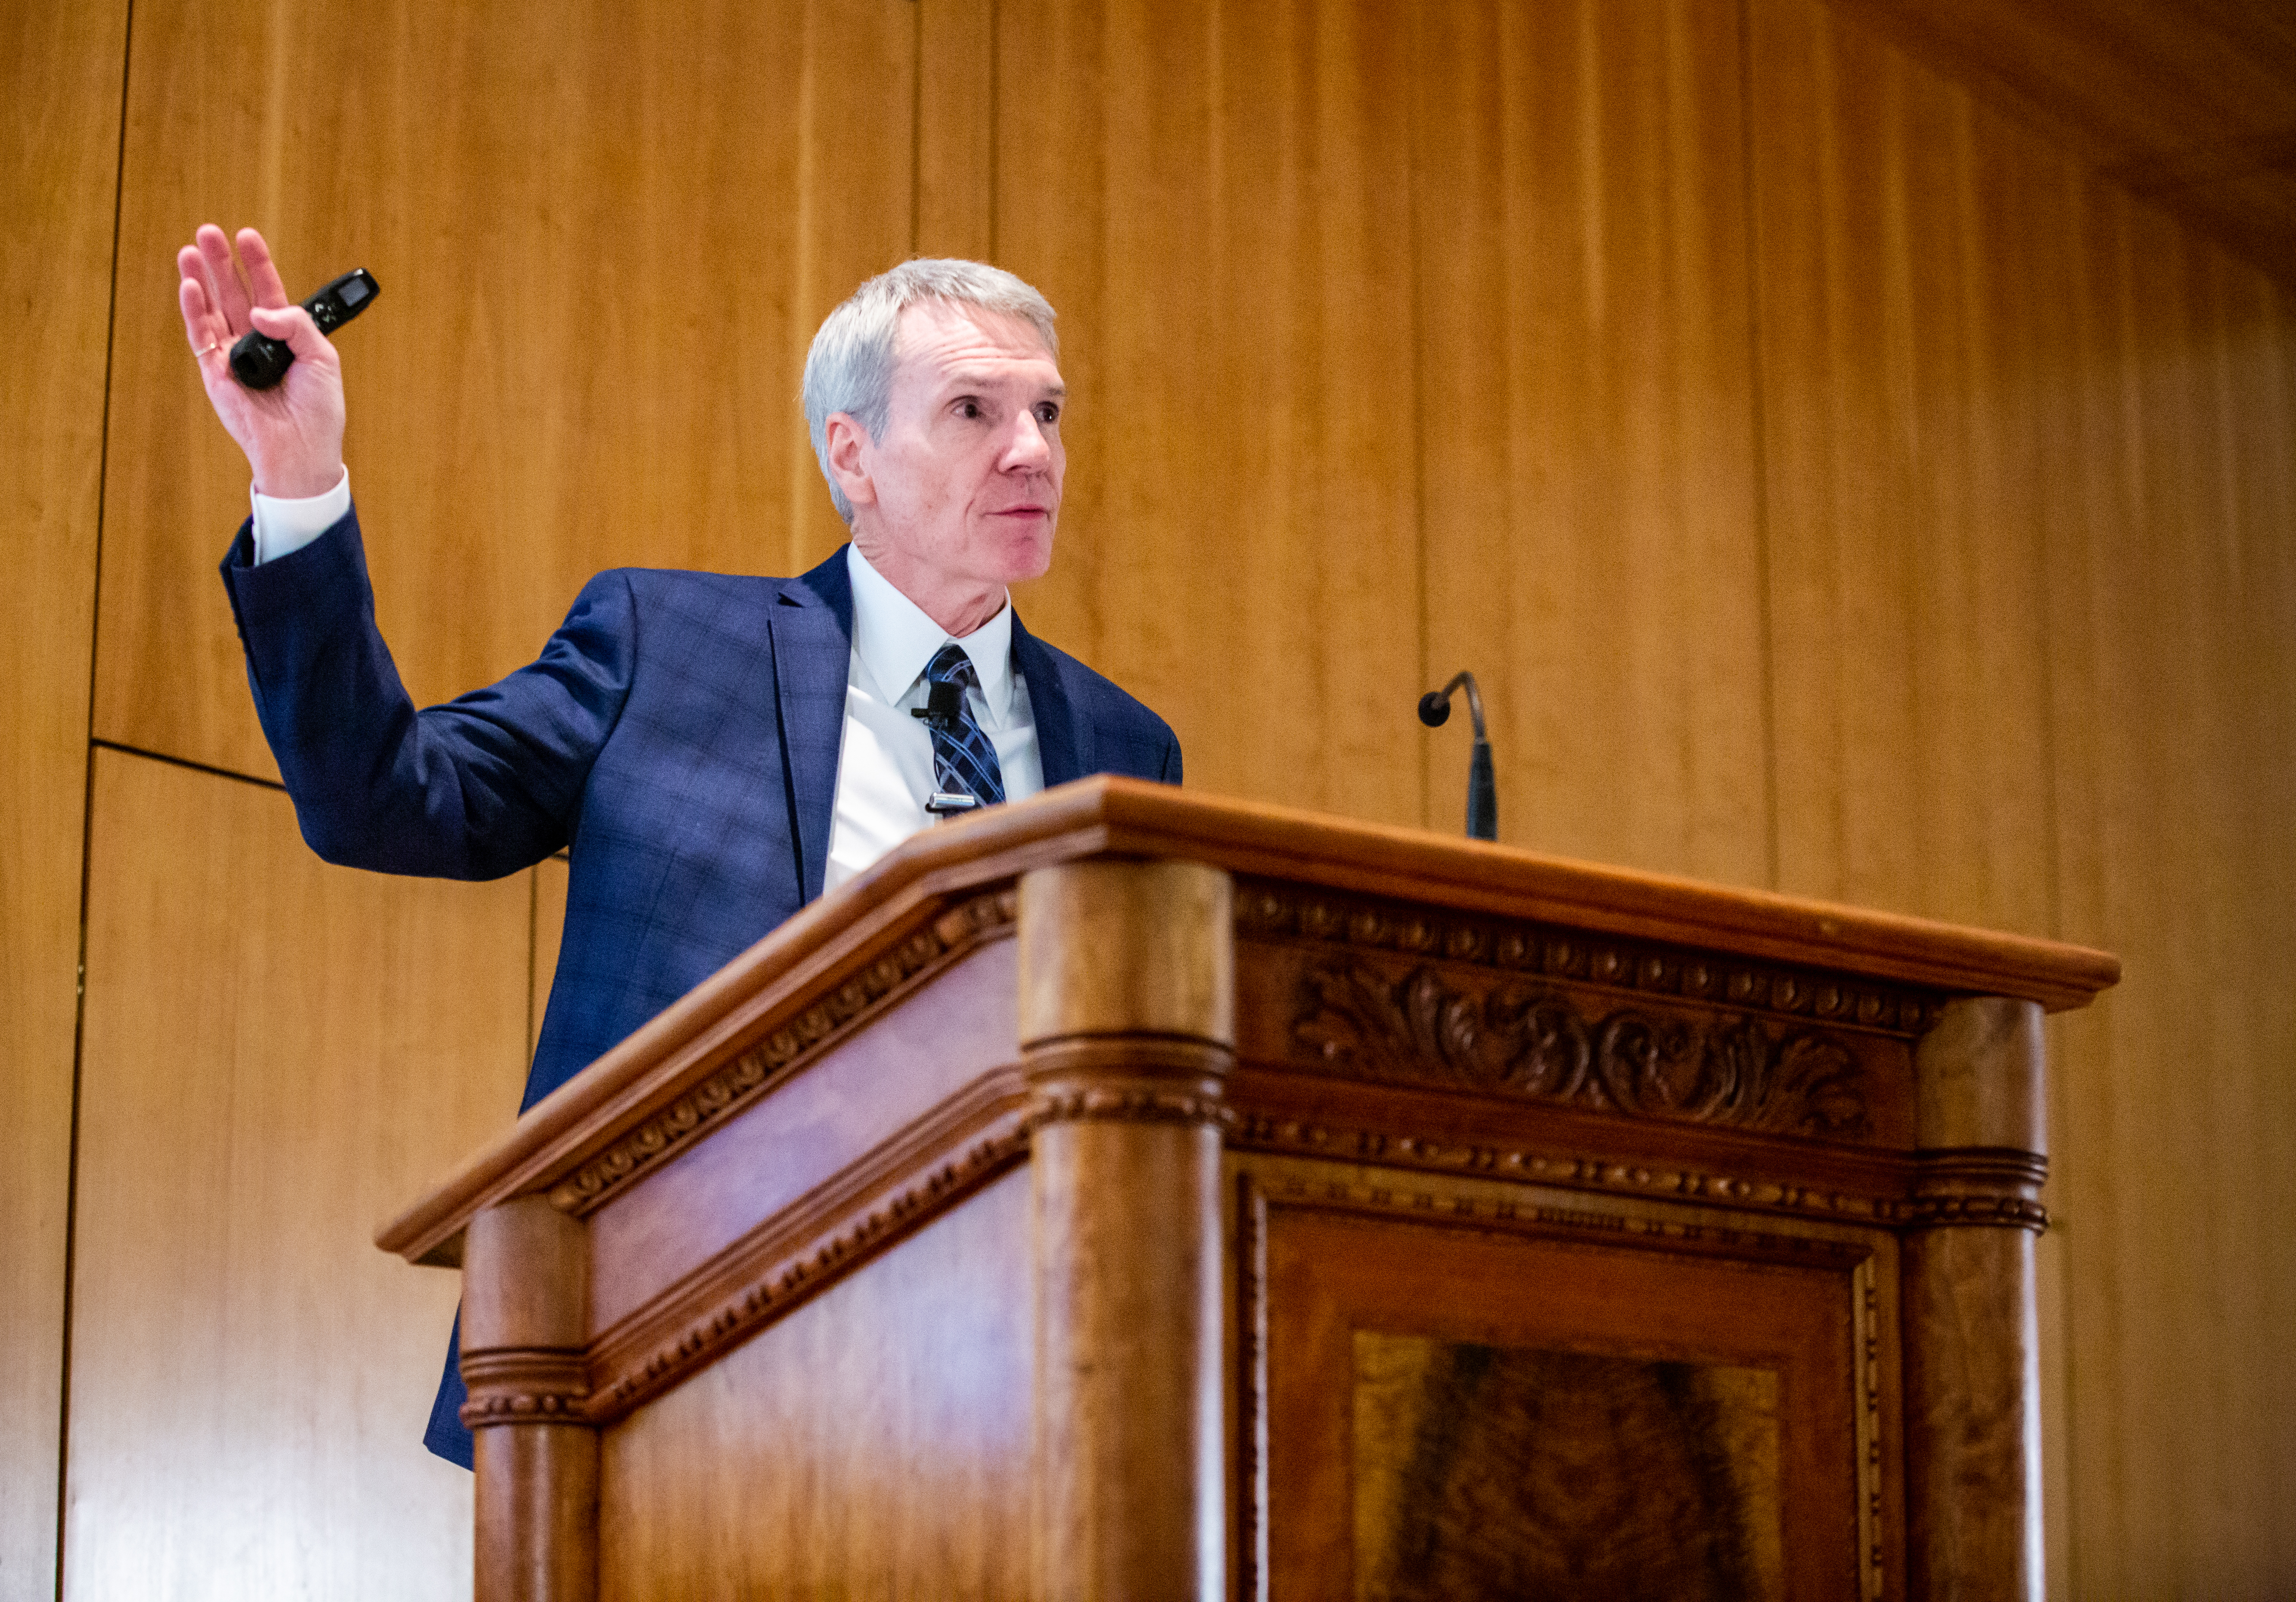 Guest speaker Dr. Scott Stanley of the University of Denver addresses students, alumni and faculty during the 15th Annual Marjorie Pay Hinckley Lecture on Feb. 7, 2019 on the BYU Provo, Utah campus.